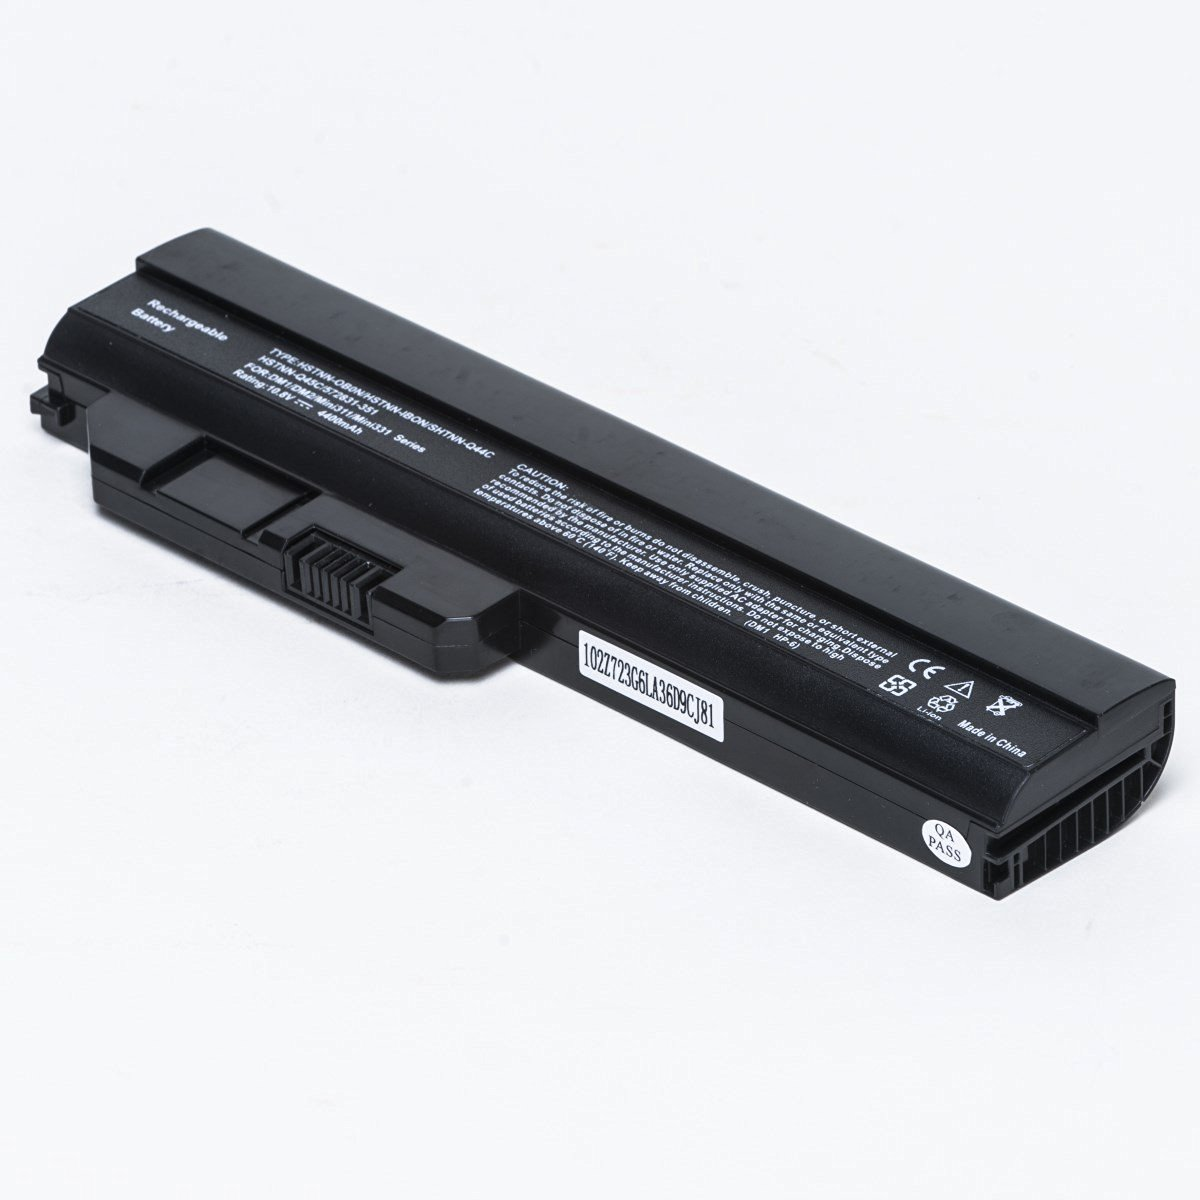 HPDM1-6 - Laptop Battery For Hp Mini 311 311-1000NR 311-1037NR Pavilion DM1-1010SS P/N's: PT06 586029-001